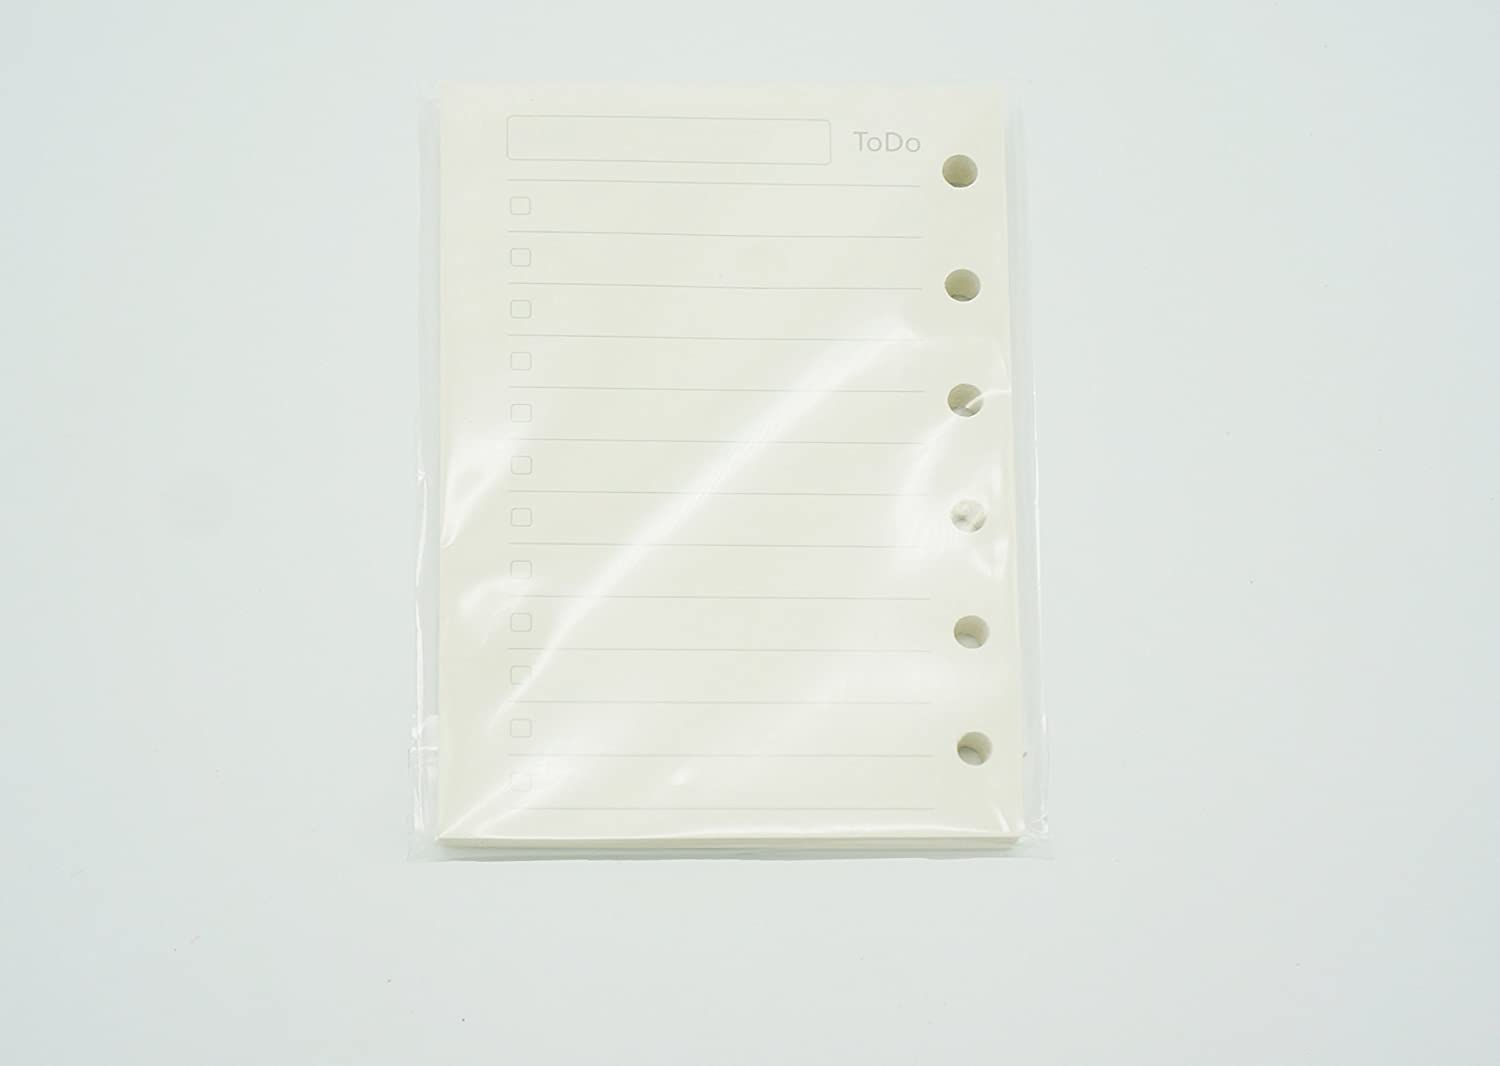 80 sheets//160 Pages Grid Harphia Dot Blank Paper,4.84 x 3.23 Planner Refill Line A7 Notebook Refill